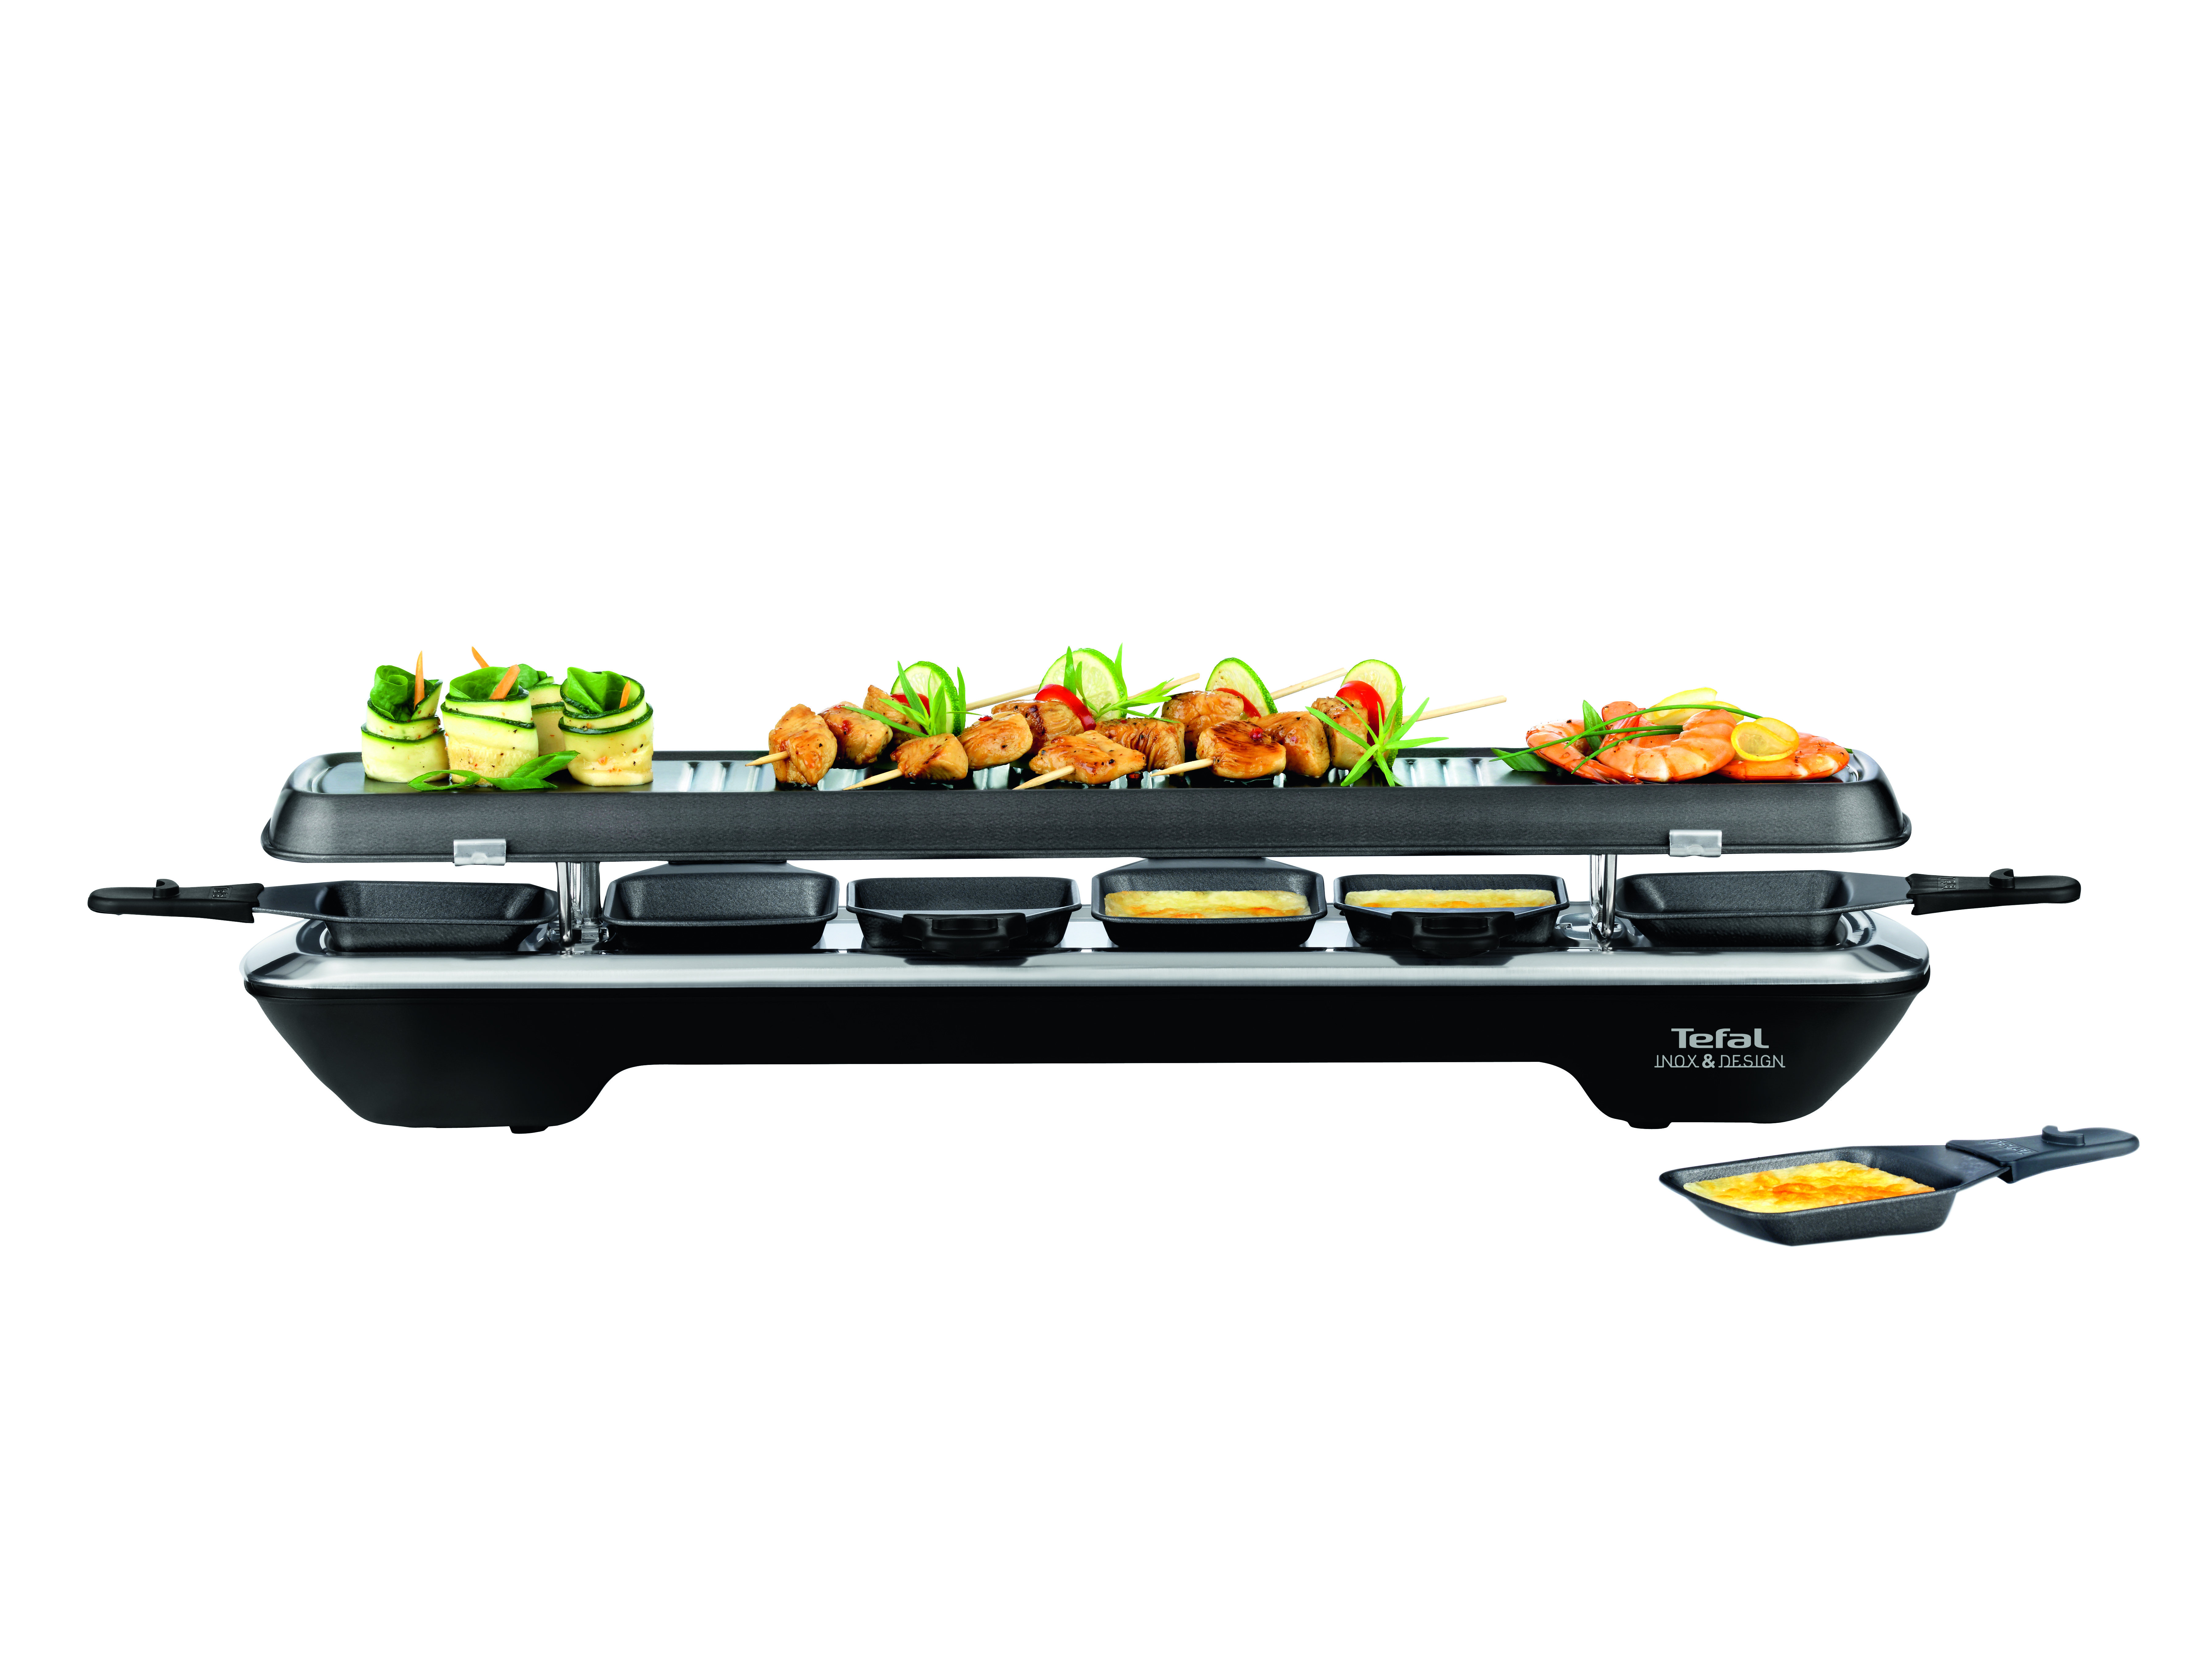 TEFAL-RE5228-Simply-Line-Inox-amp-Design-Black-Stainless-steel-1050-W-Marketing thumbnail 2